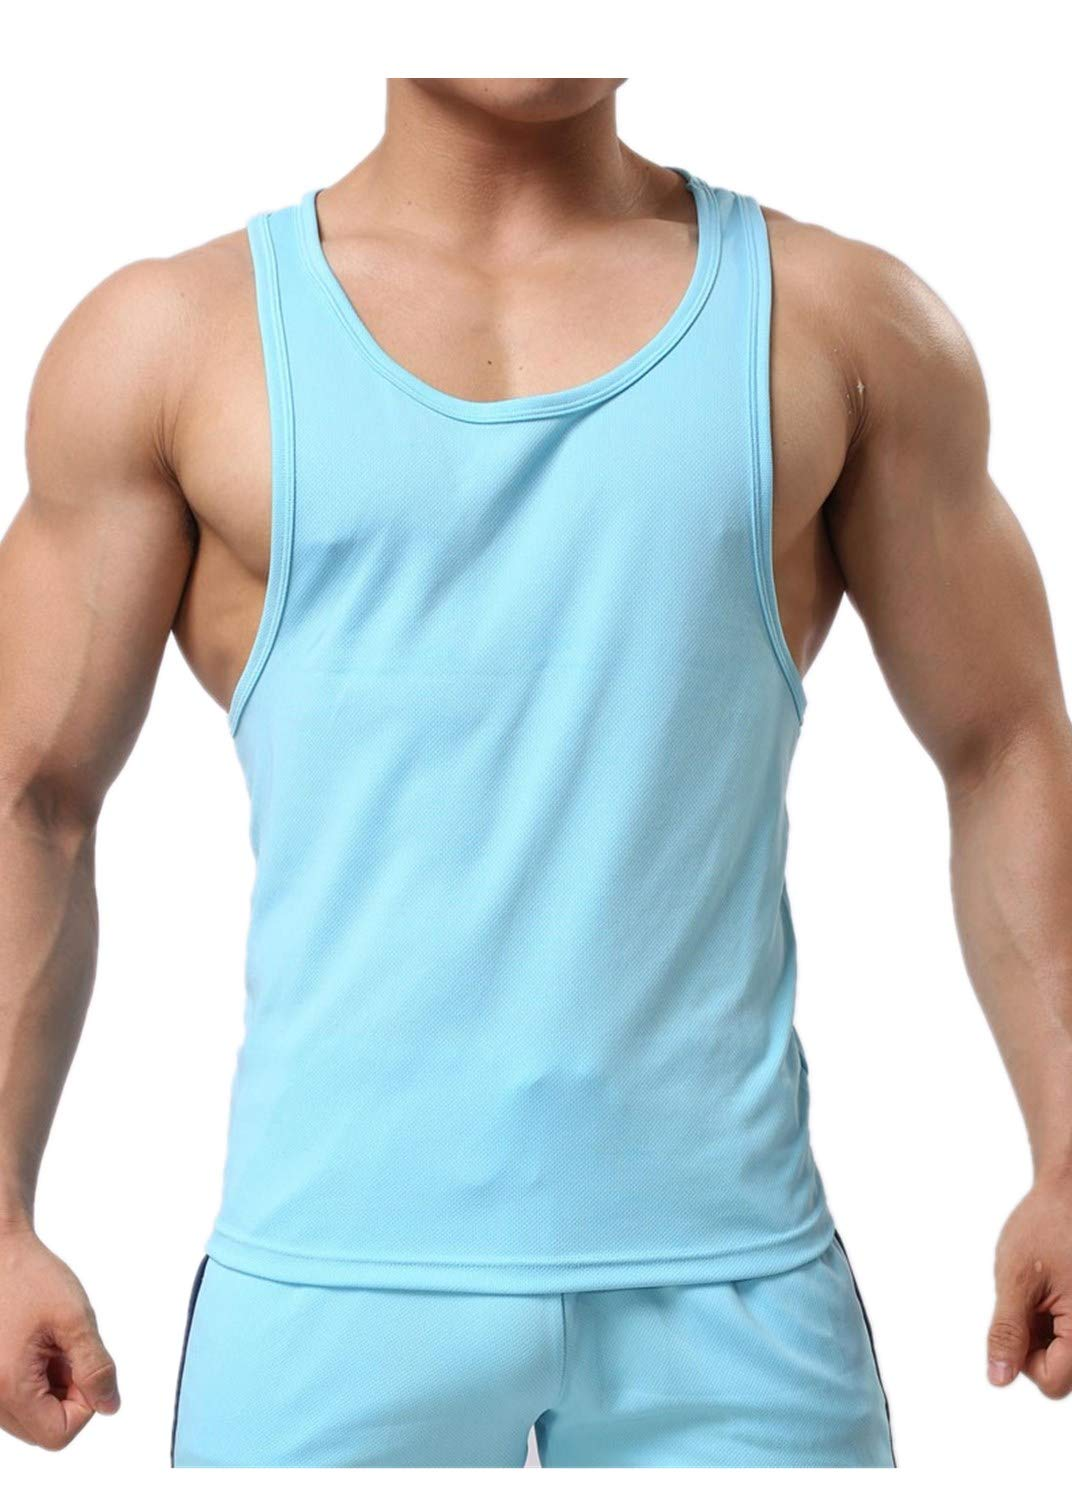 Men's Sleeveless Solid Tank Top Type I-Shaped Vest Quick-Drying Fitness Blouse Casual T Shirts